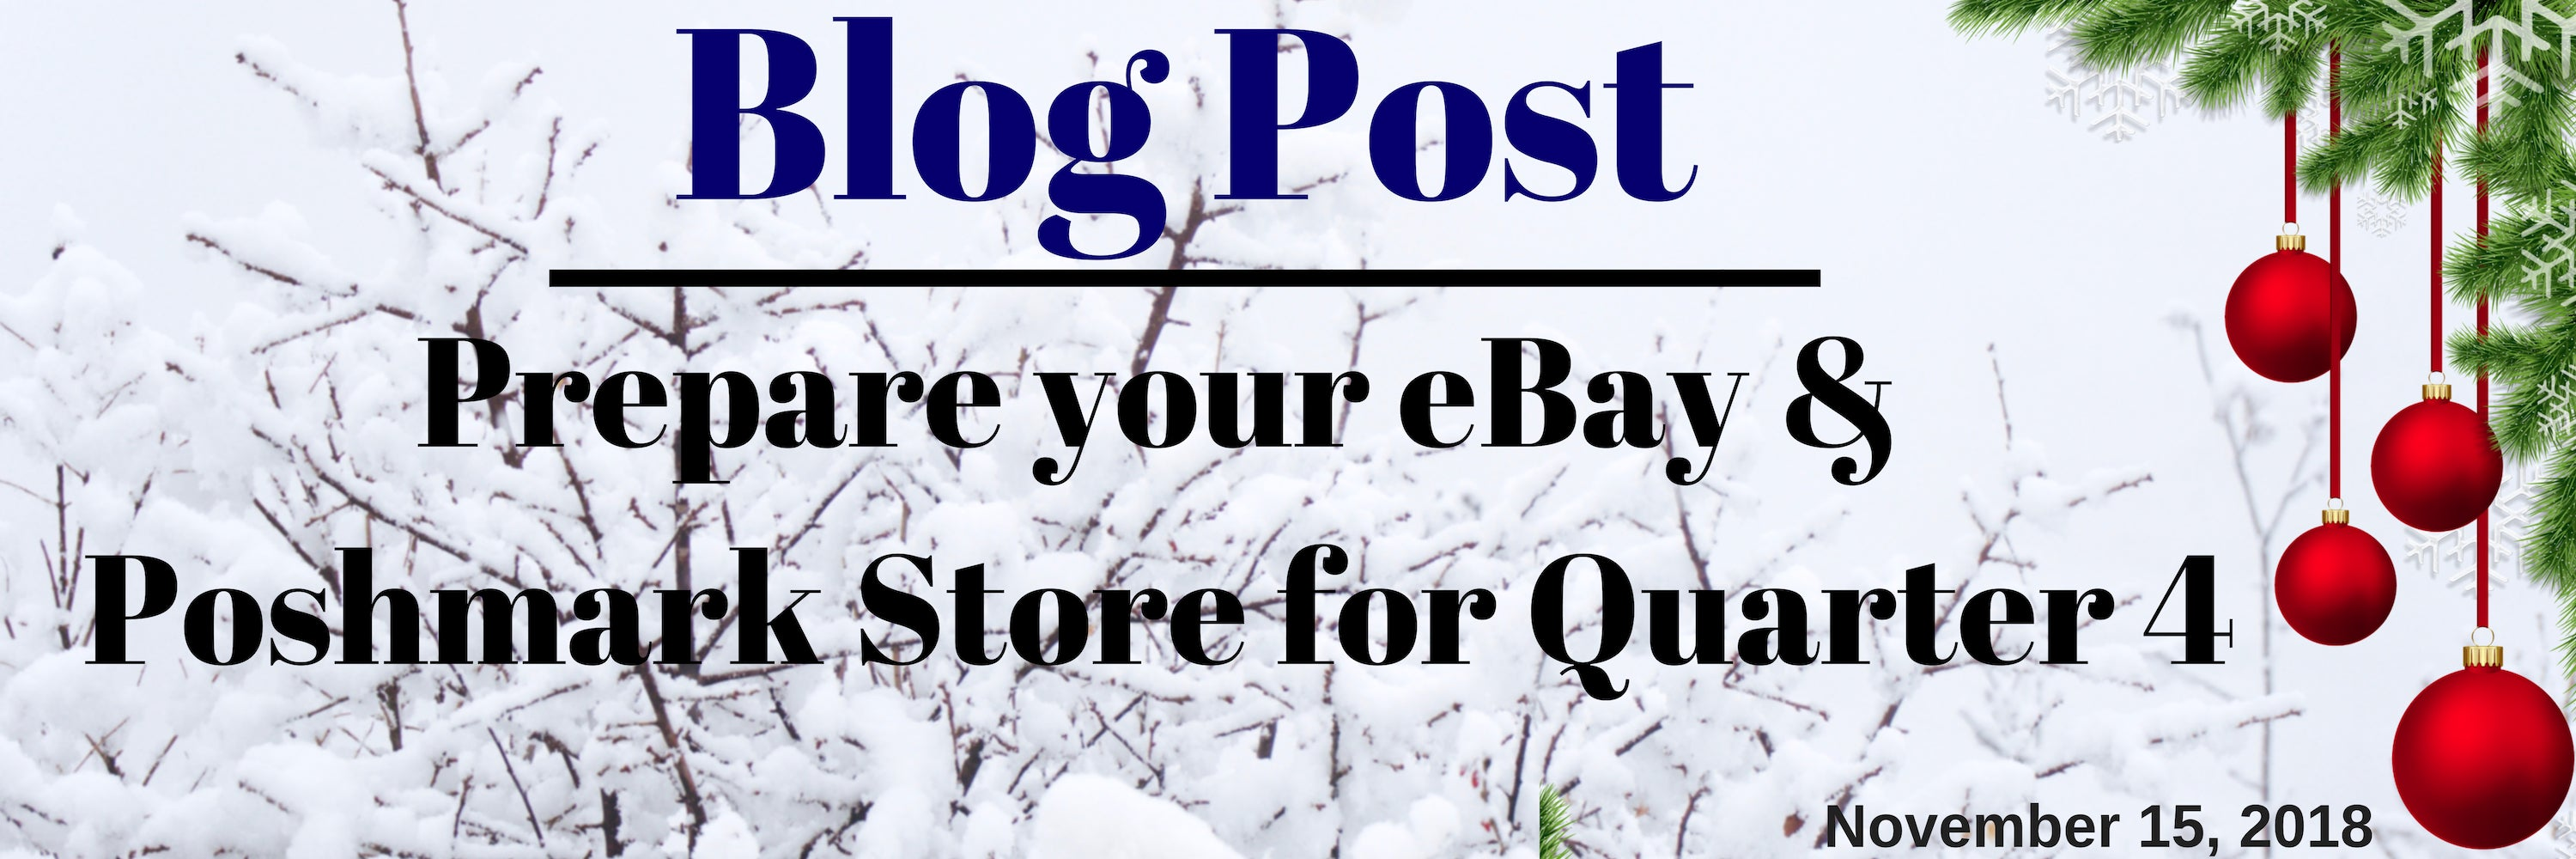 Blog Post: Prepare Your eBay & Poshmark Store for Quarter 4 | Christmas Selling Advice